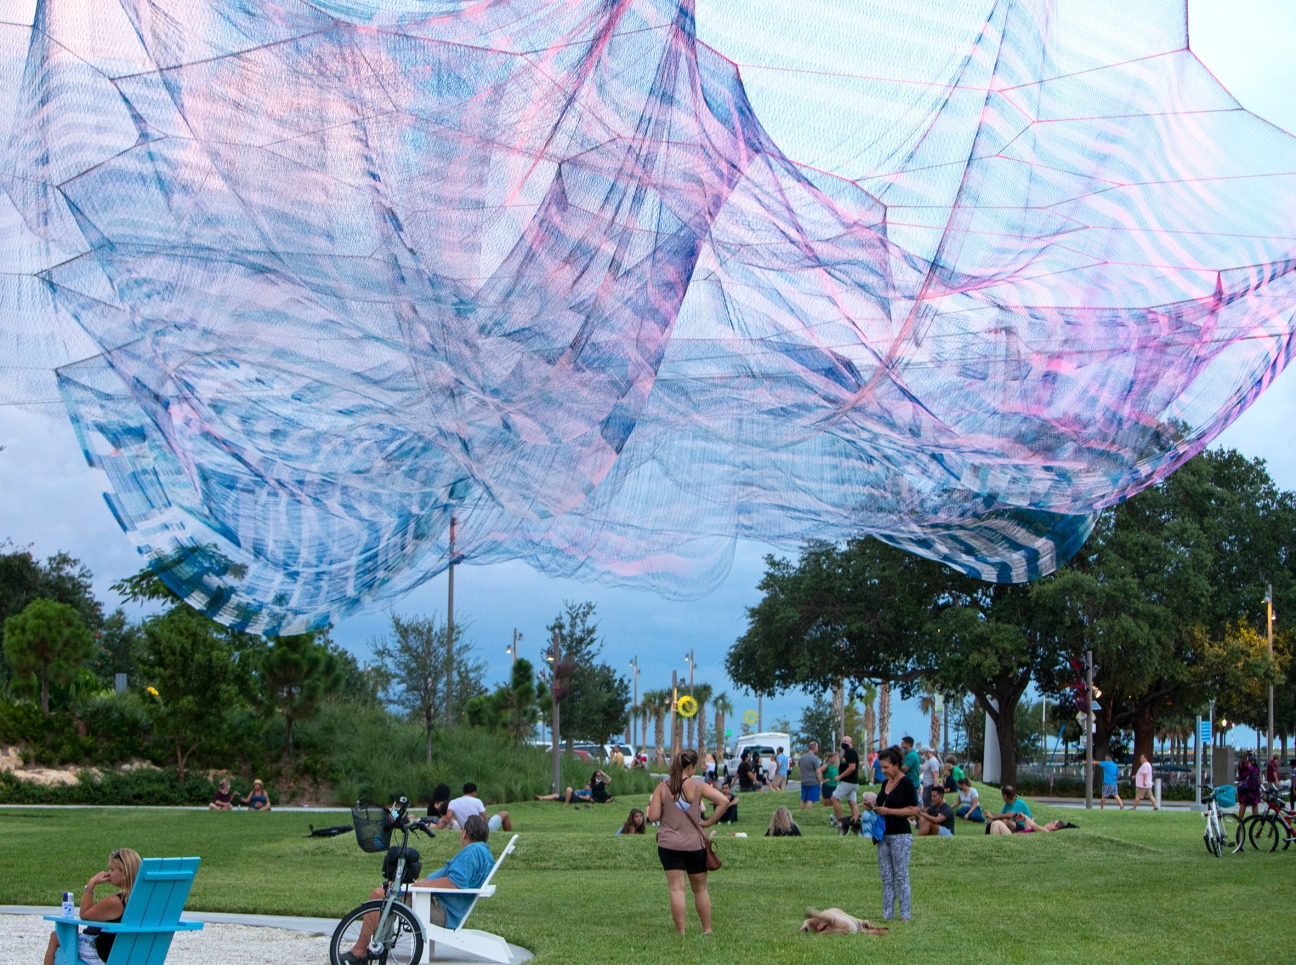 Bending Arc by Janet Echelman @ St Petersburg, USA